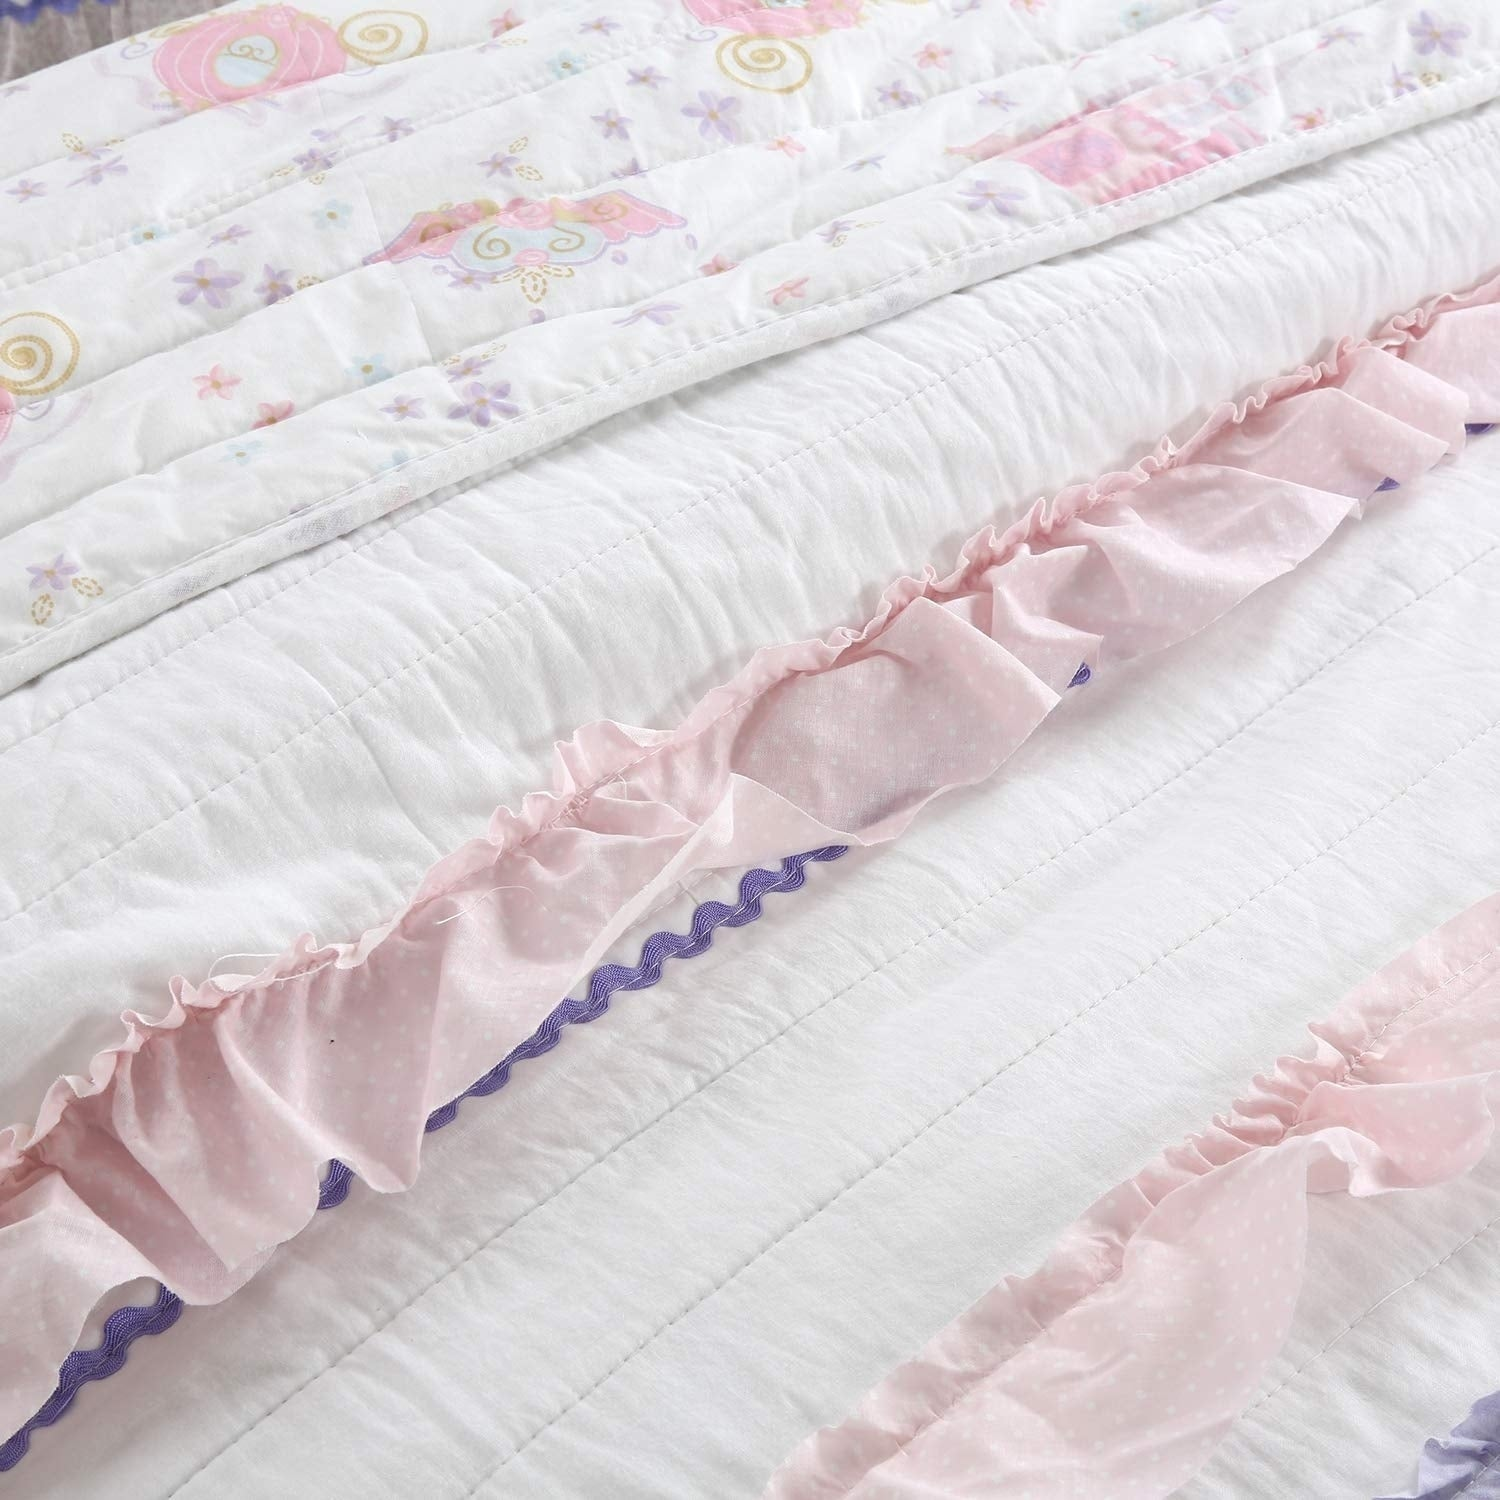 Cozy Line Malia Ruffle Stripe Reversible Cotton Quilt Set Lilac Pink White Lilac Pink White Overstock 27300188